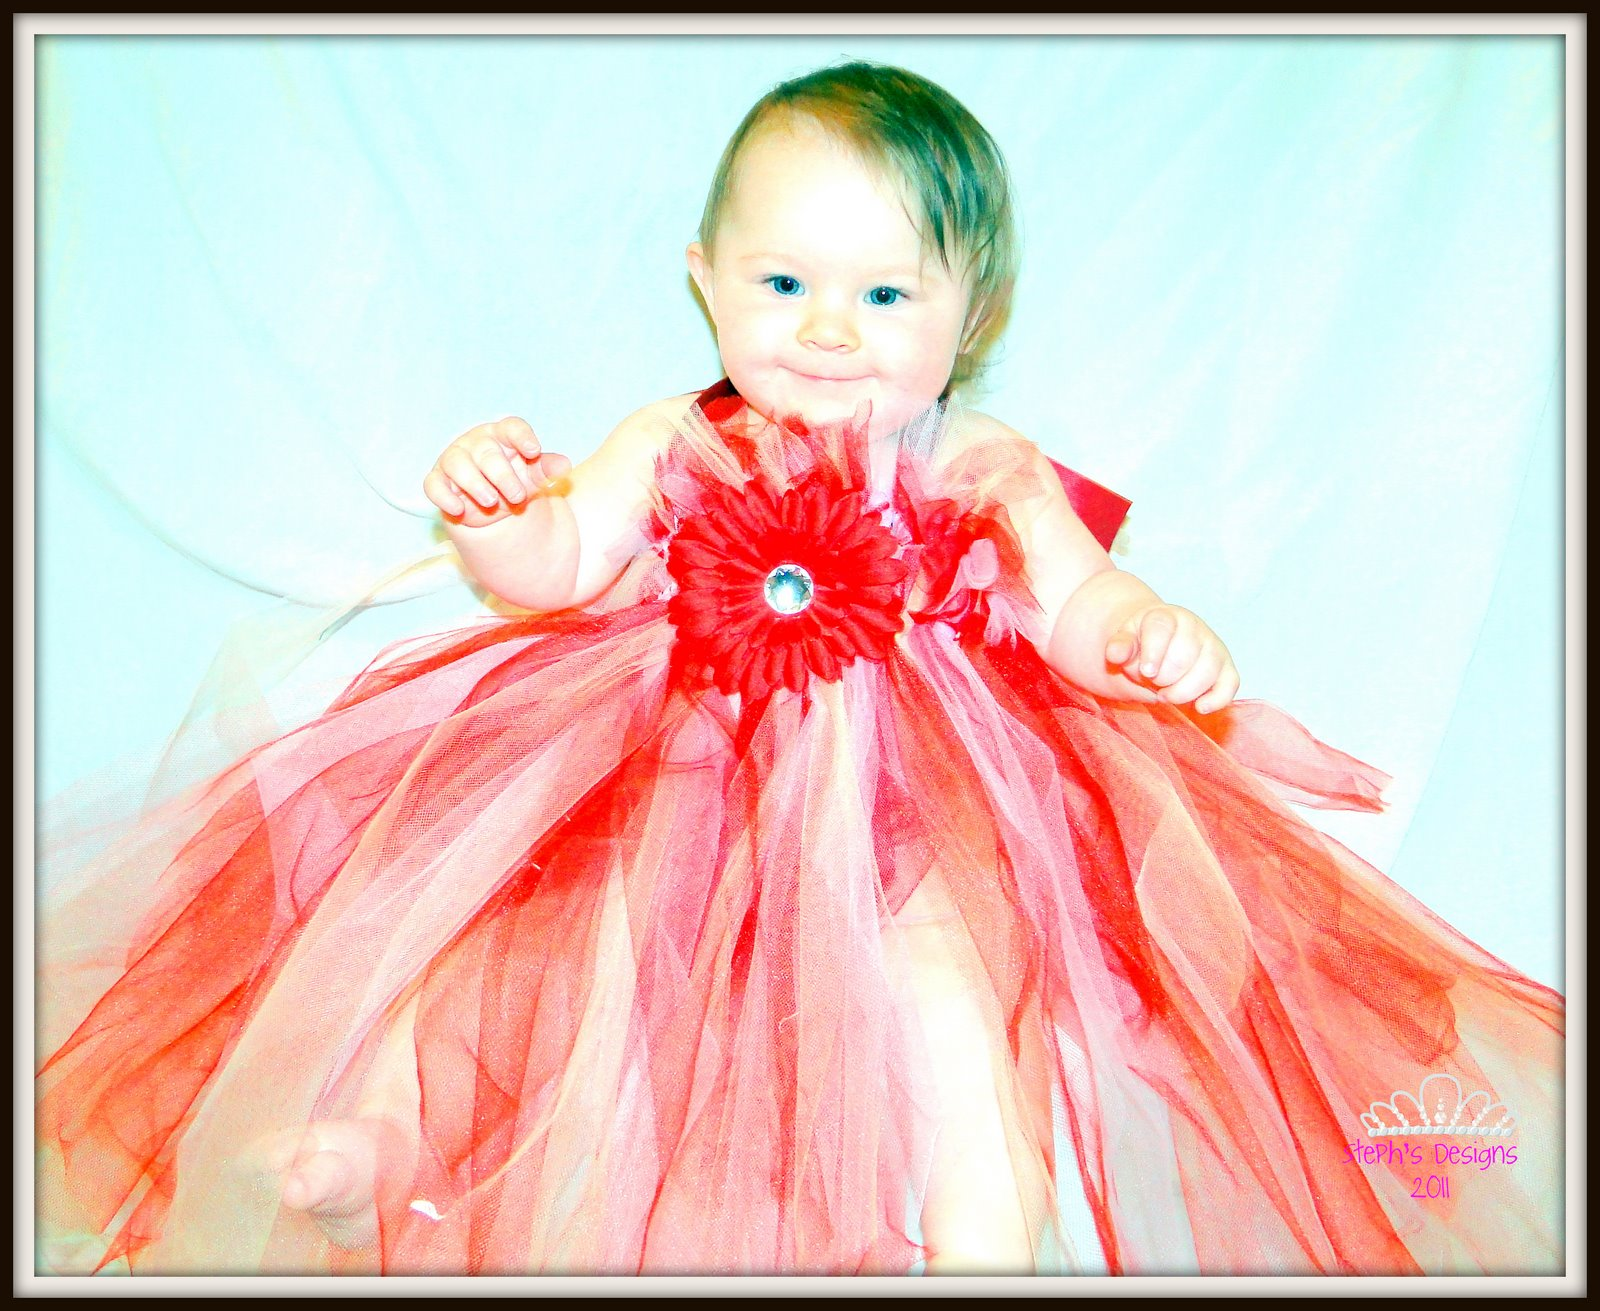 Baby dresses for girls baby dress - Baby Dress Models A Baby Around 6 12 Months